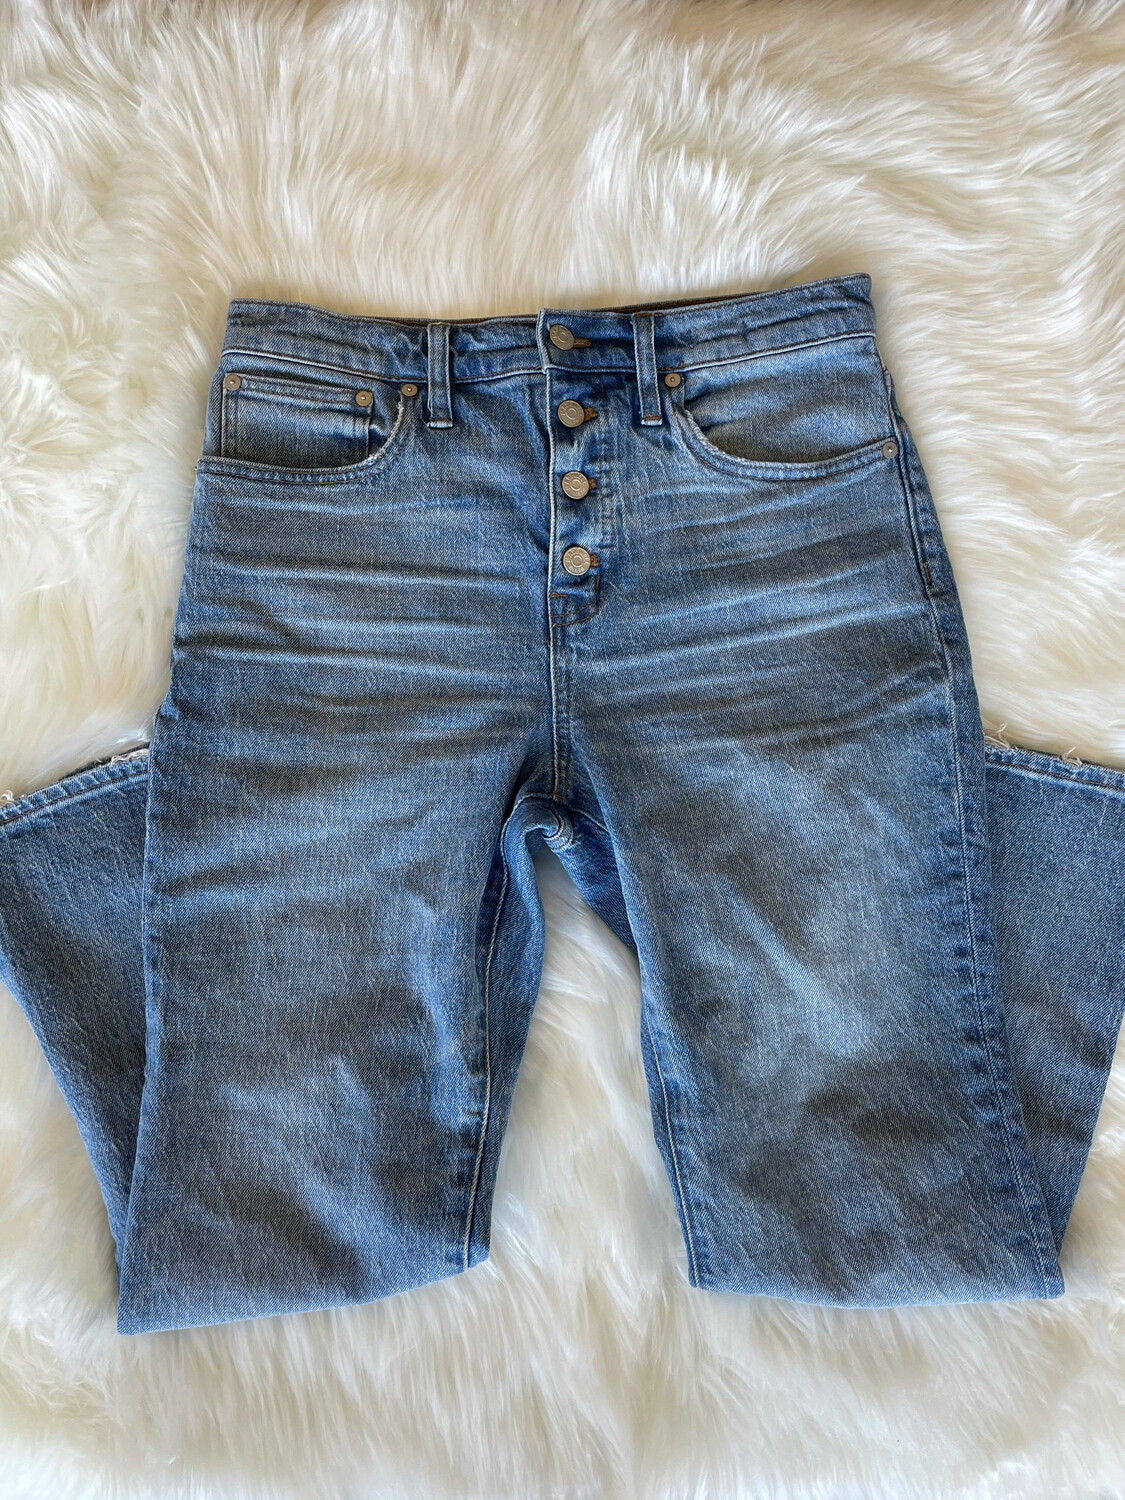 Madwell Cali Demi Boot 4 Button Jeans - Size 28